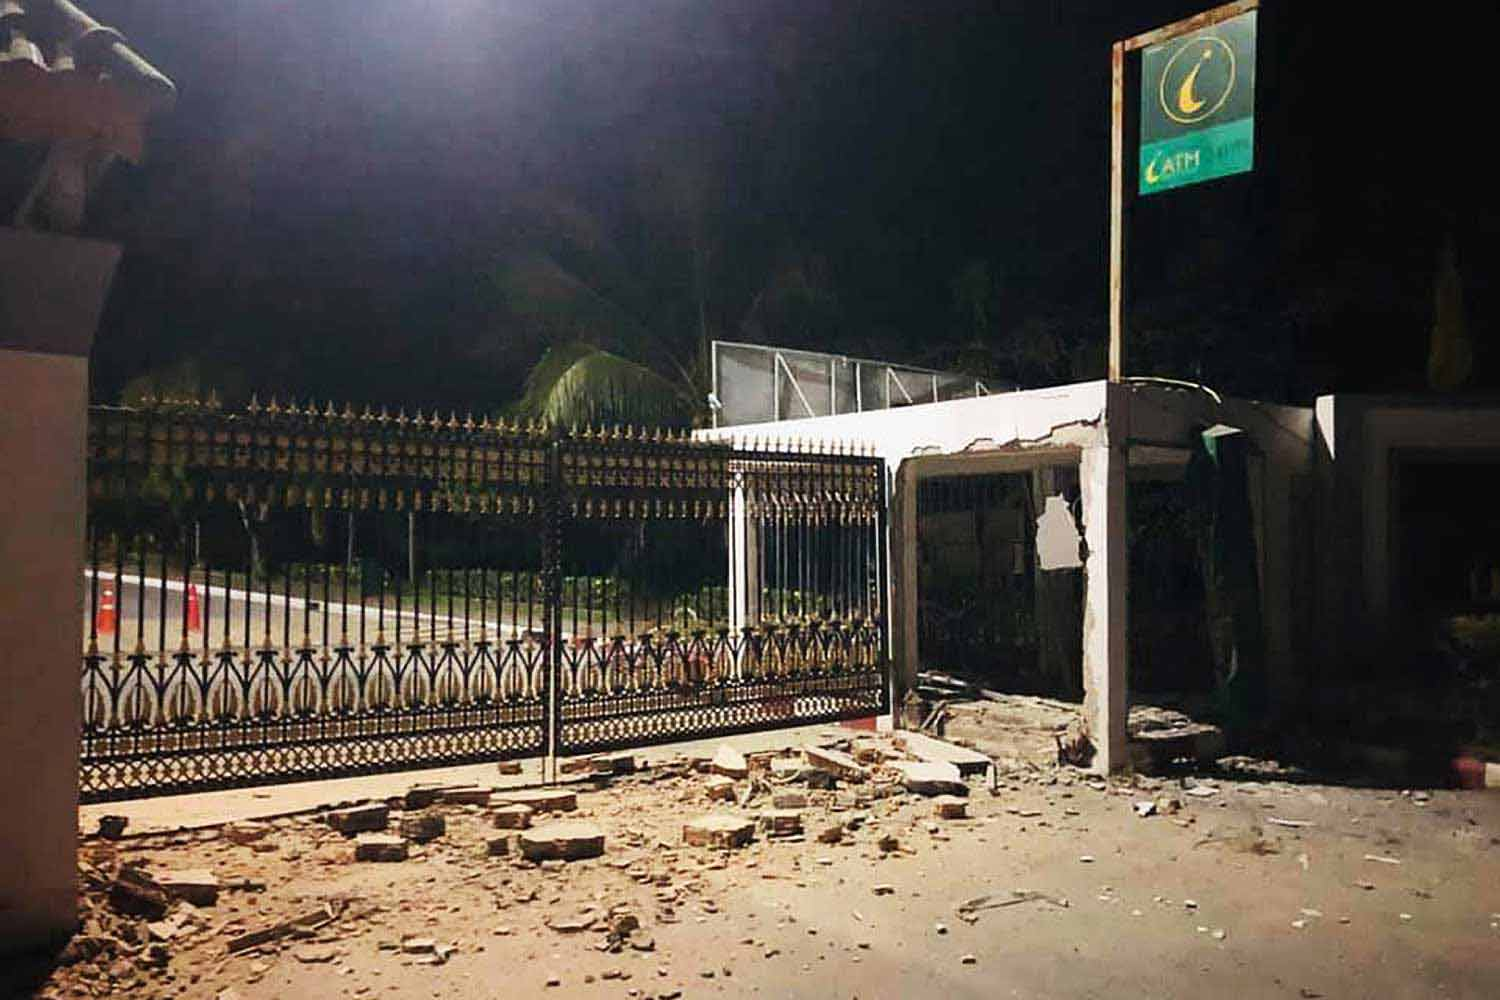 The Islamic Bank ATM damaged by a bomb at the entrance of Fatoni University in Pattani province on Sunday. (Photo by Abdullah Benjakat)